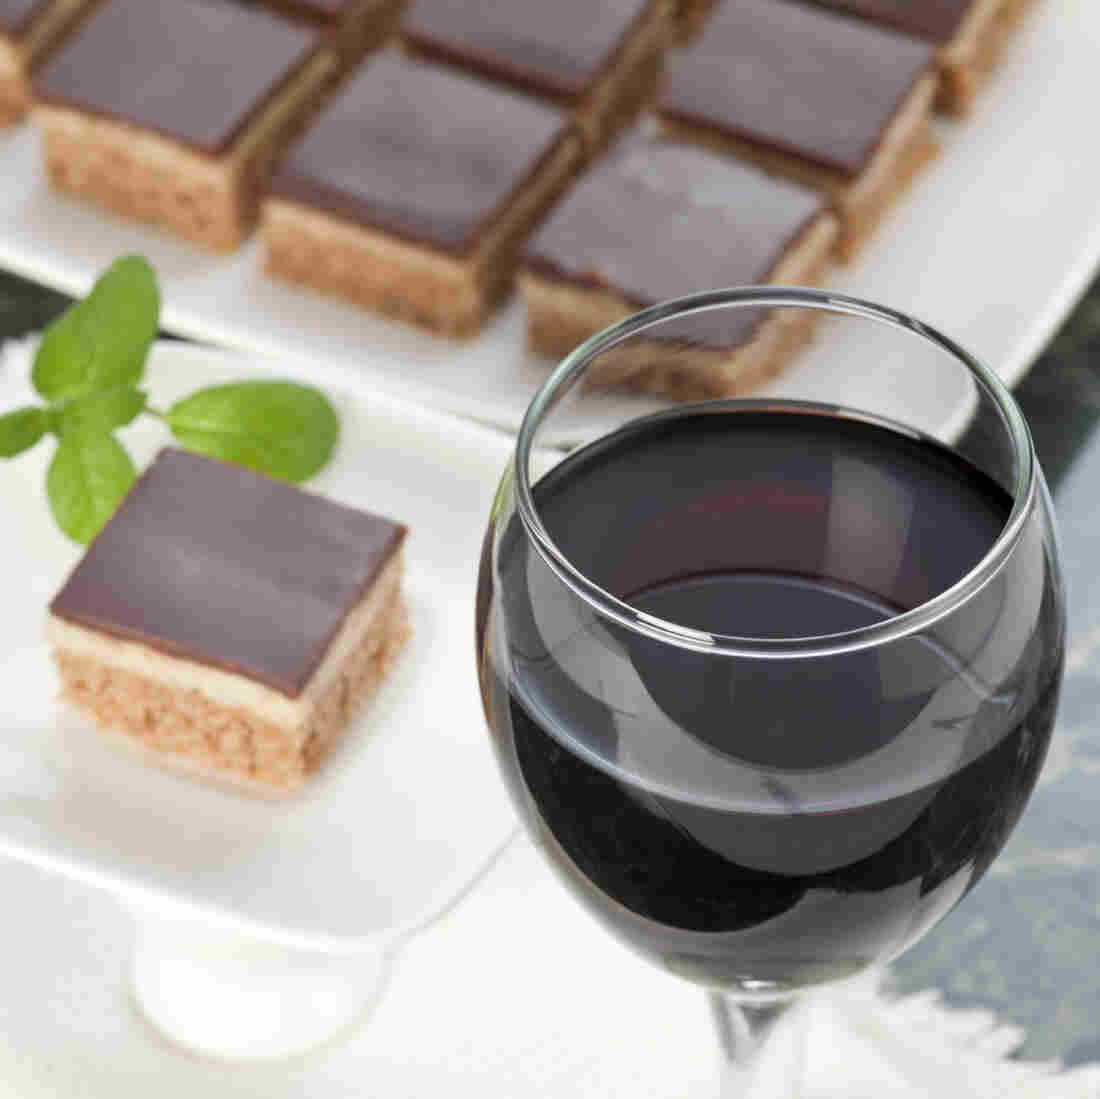 There are more than three dozen polyphenols in red wine that could be beneficial. But resveratrol may not have much influence on our health.